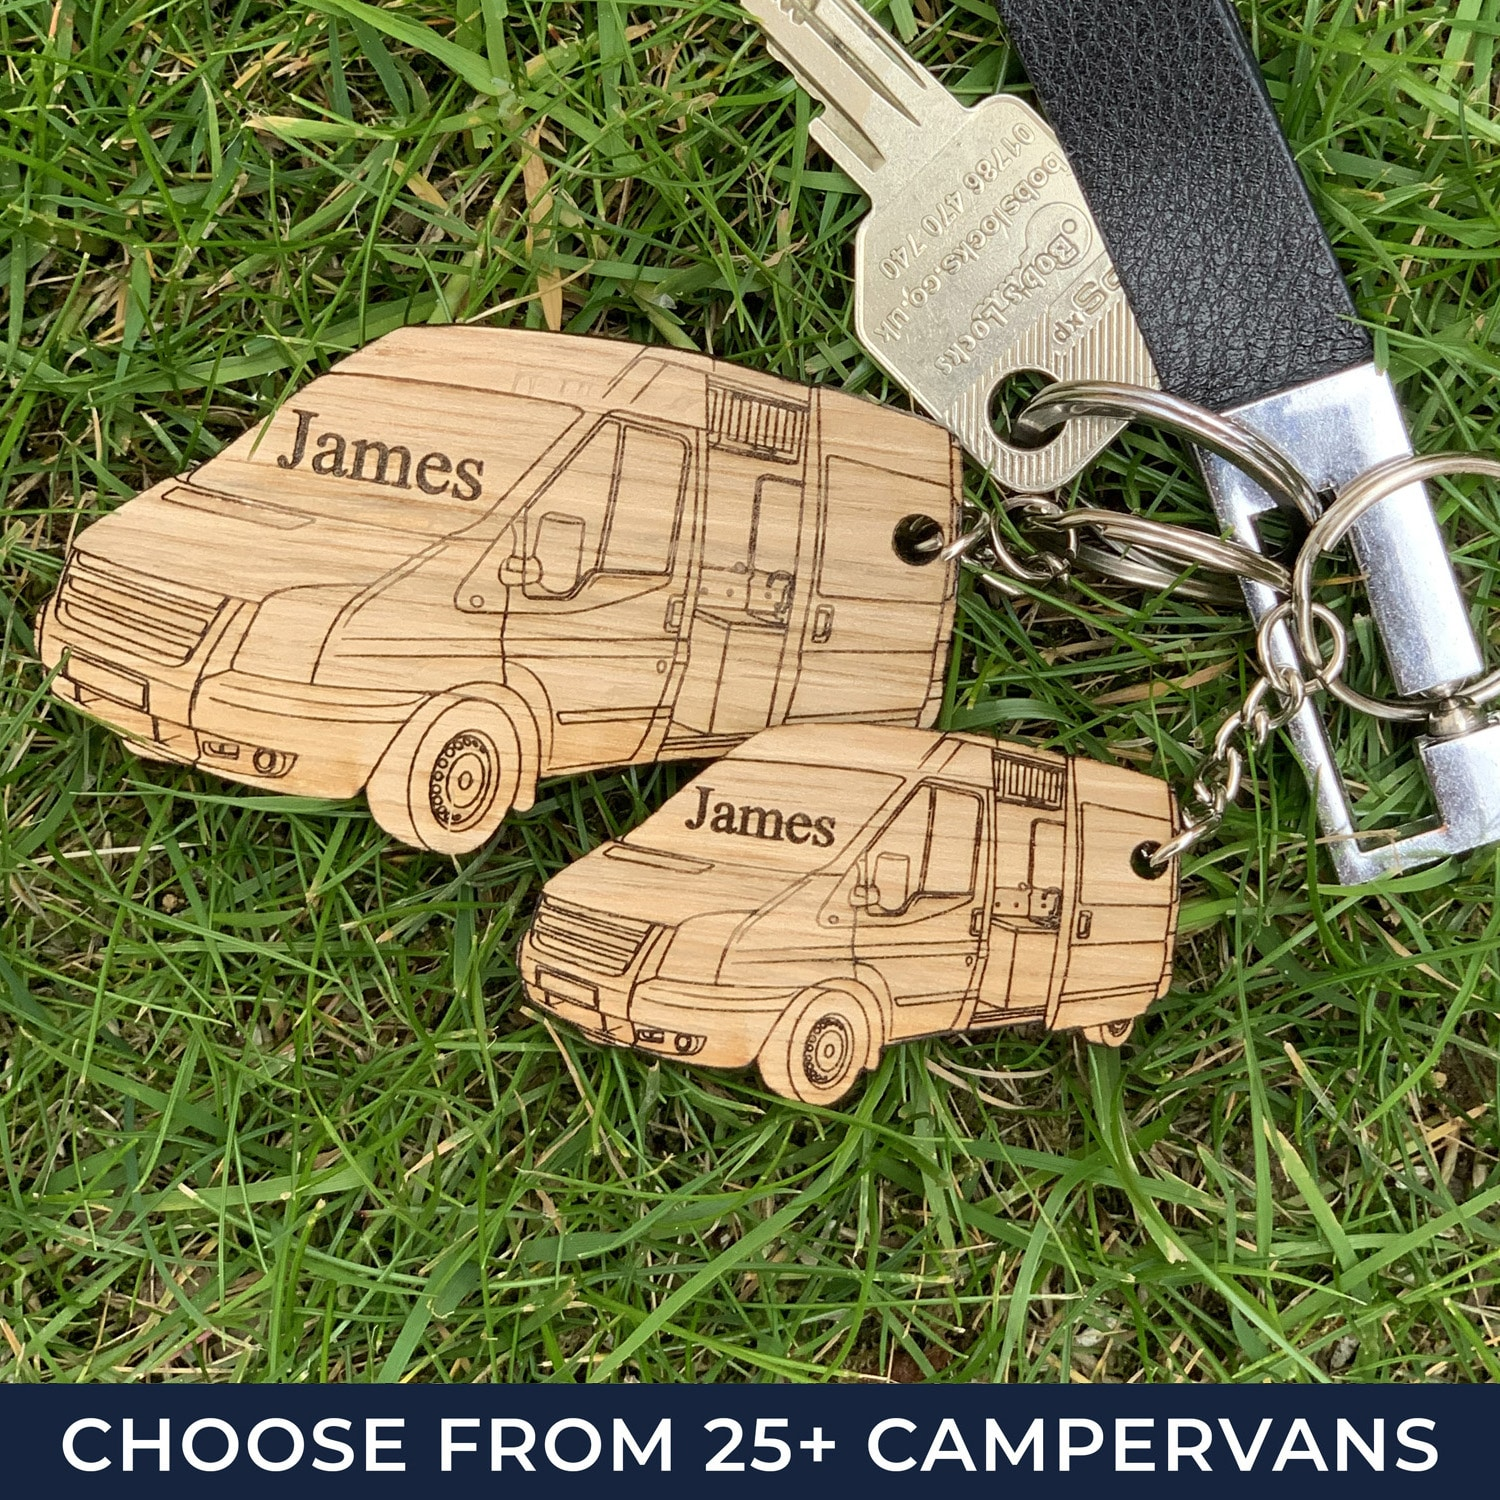 Our campervan keyring which is personalised to over 80 different campervan designs making the perfect campervan gift